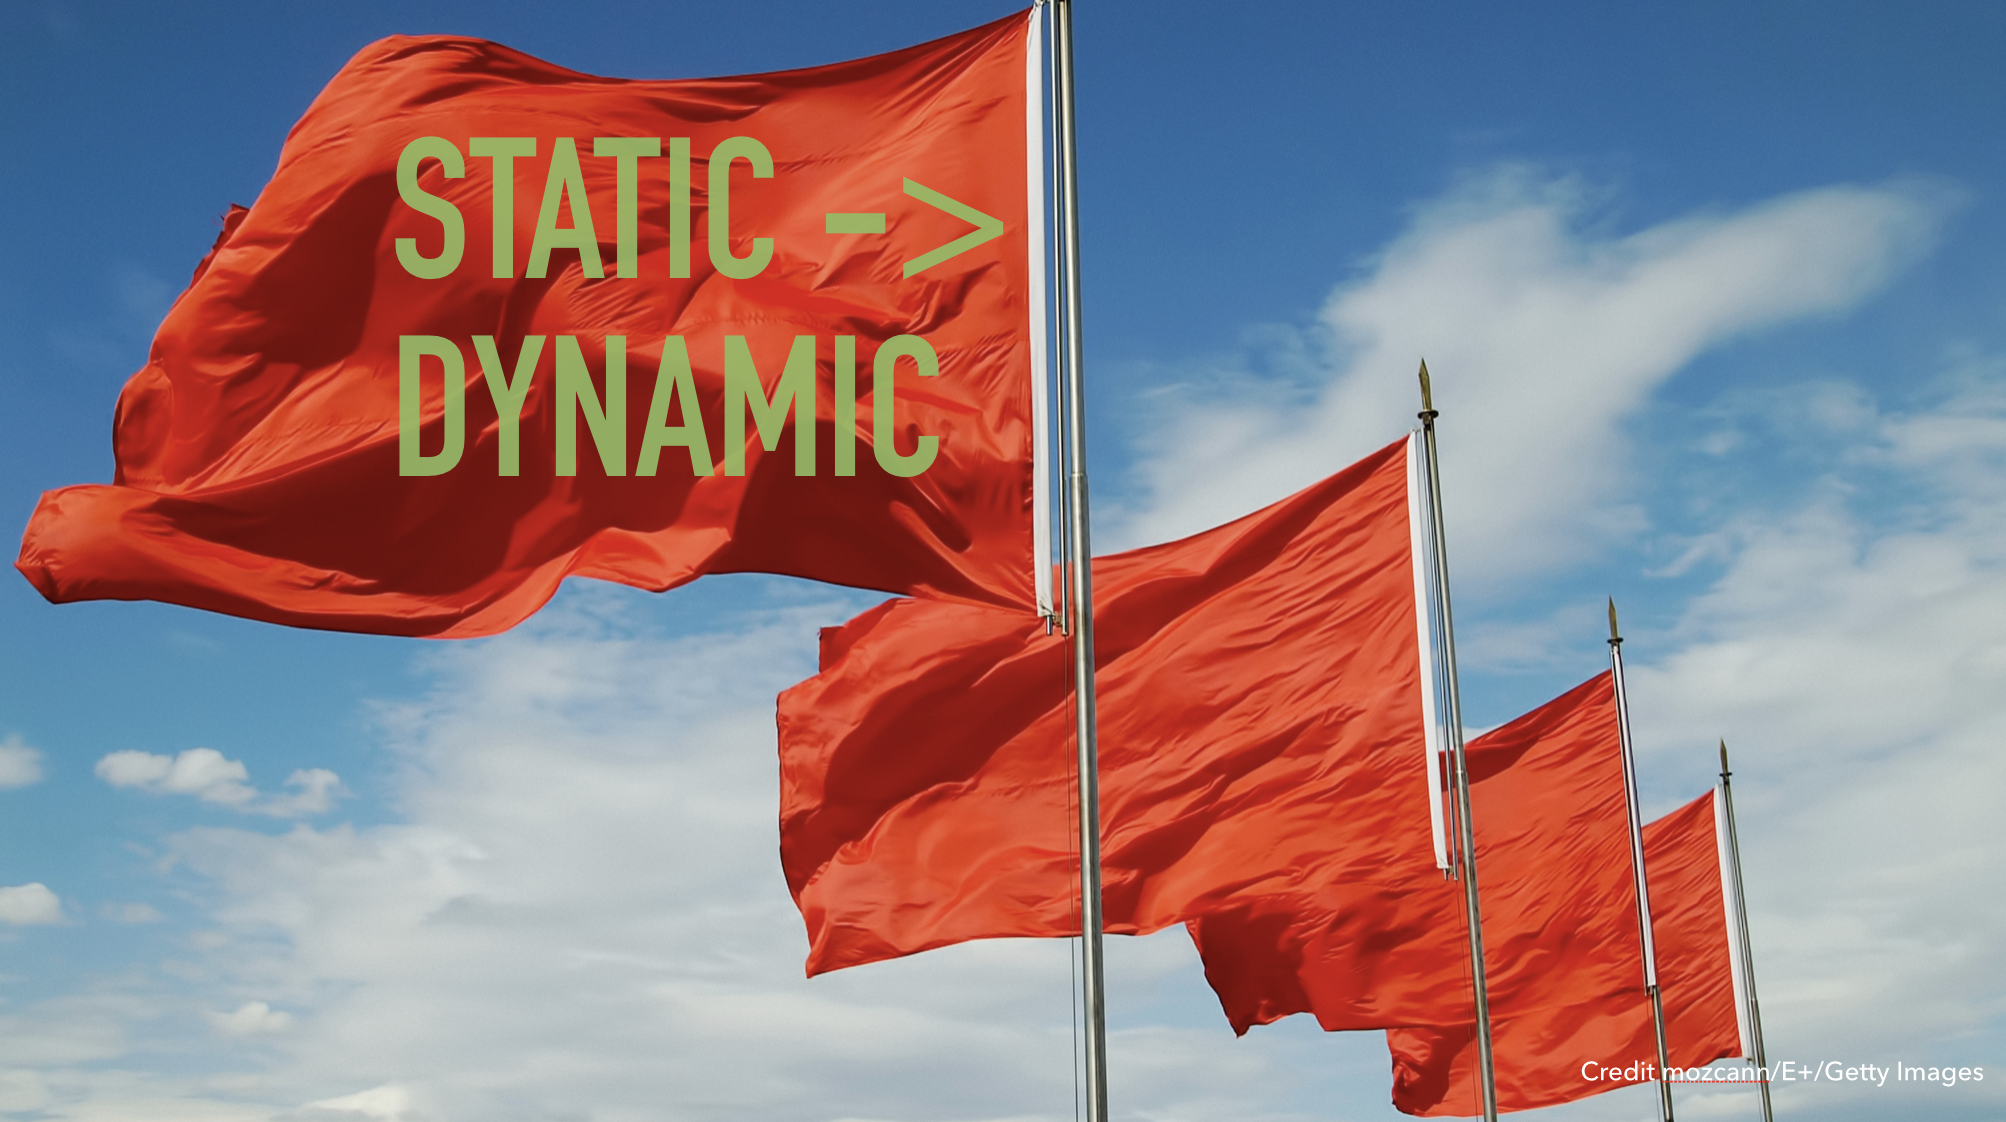 Slide text: Static - /> Dynanic